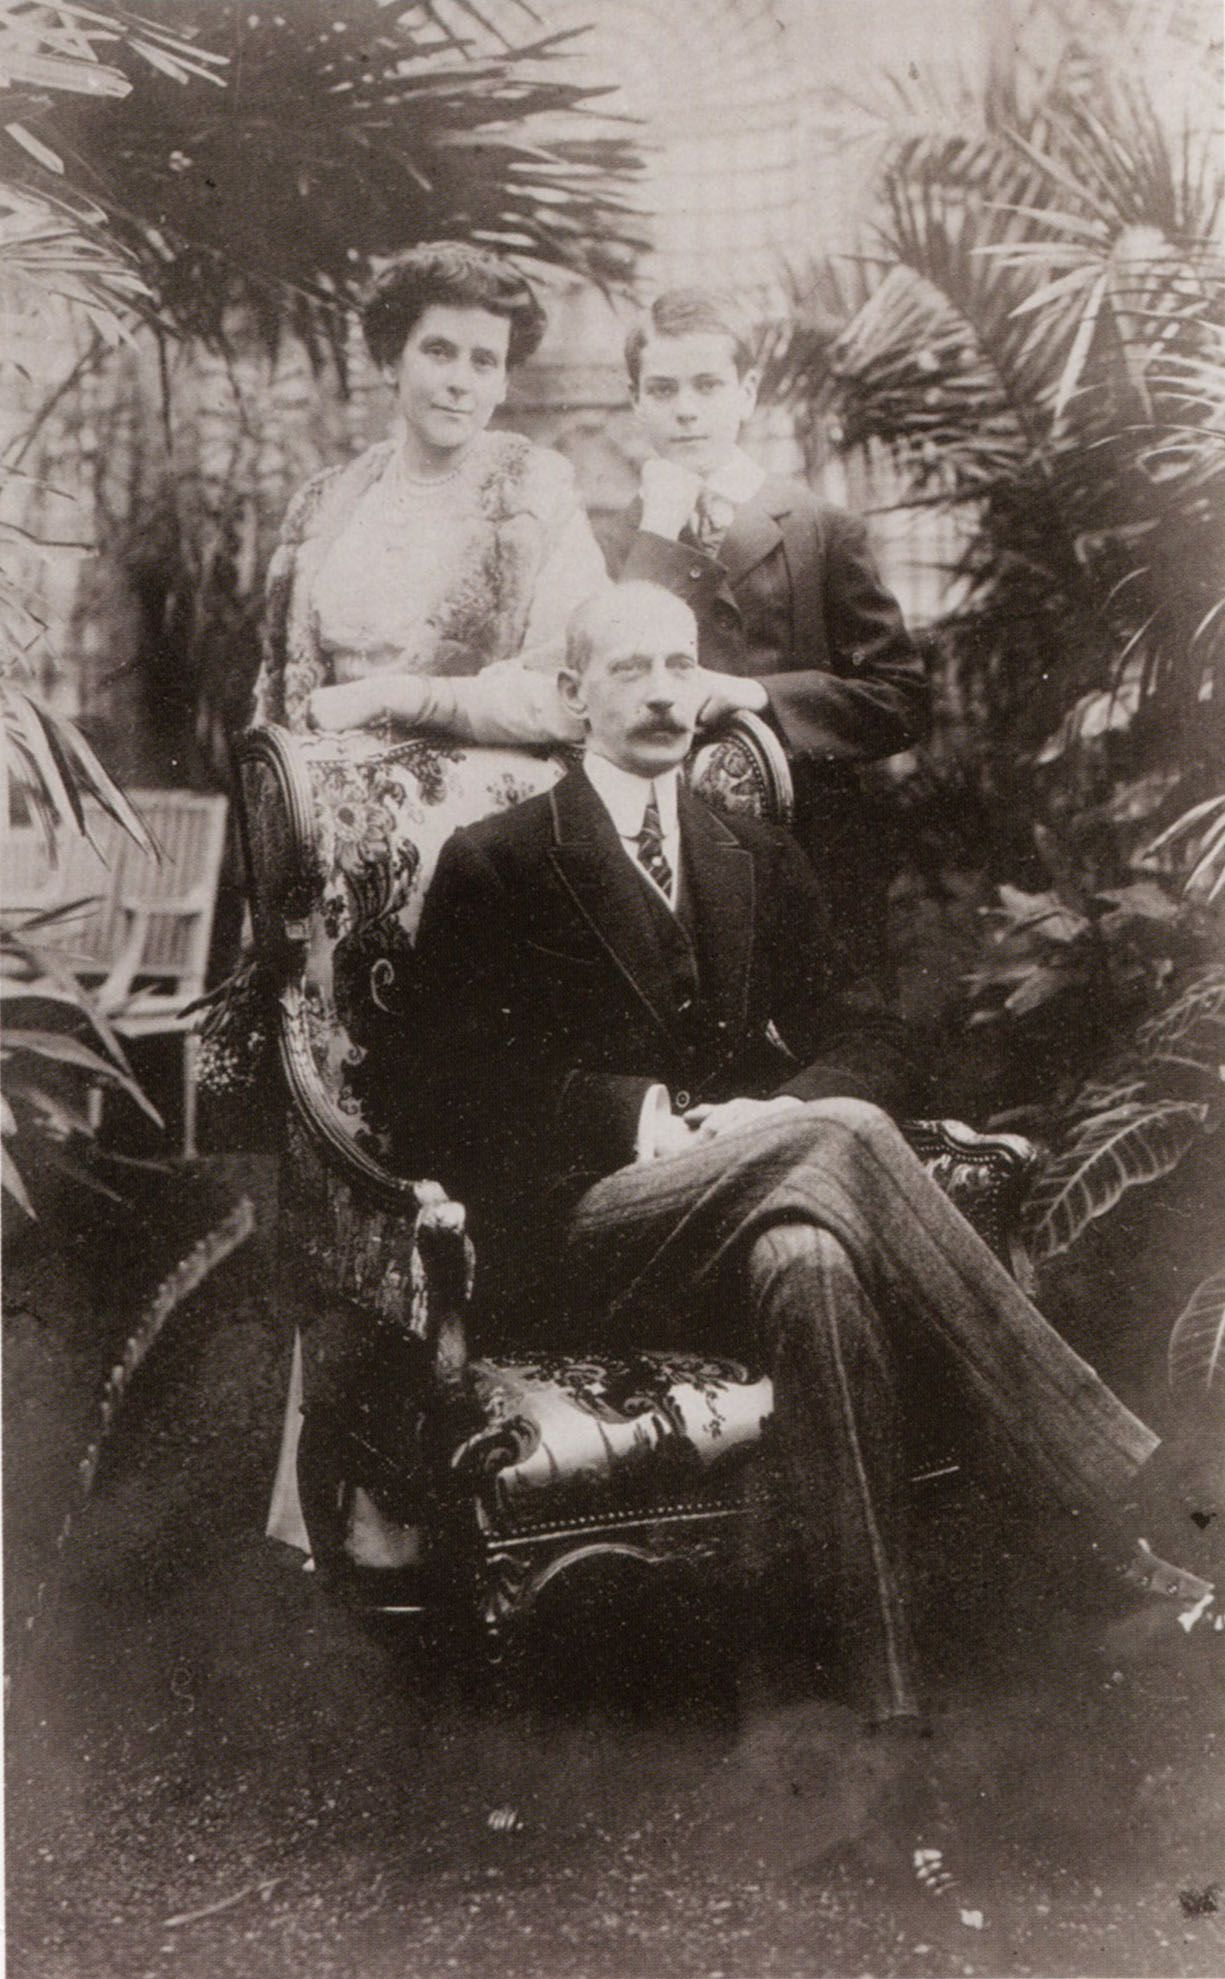 Grand Duke Paul Alexandrovich with his wife Olga Valerianova, Countess Hohenfelsen (Princess Paley since 1915) and their son Vladimir